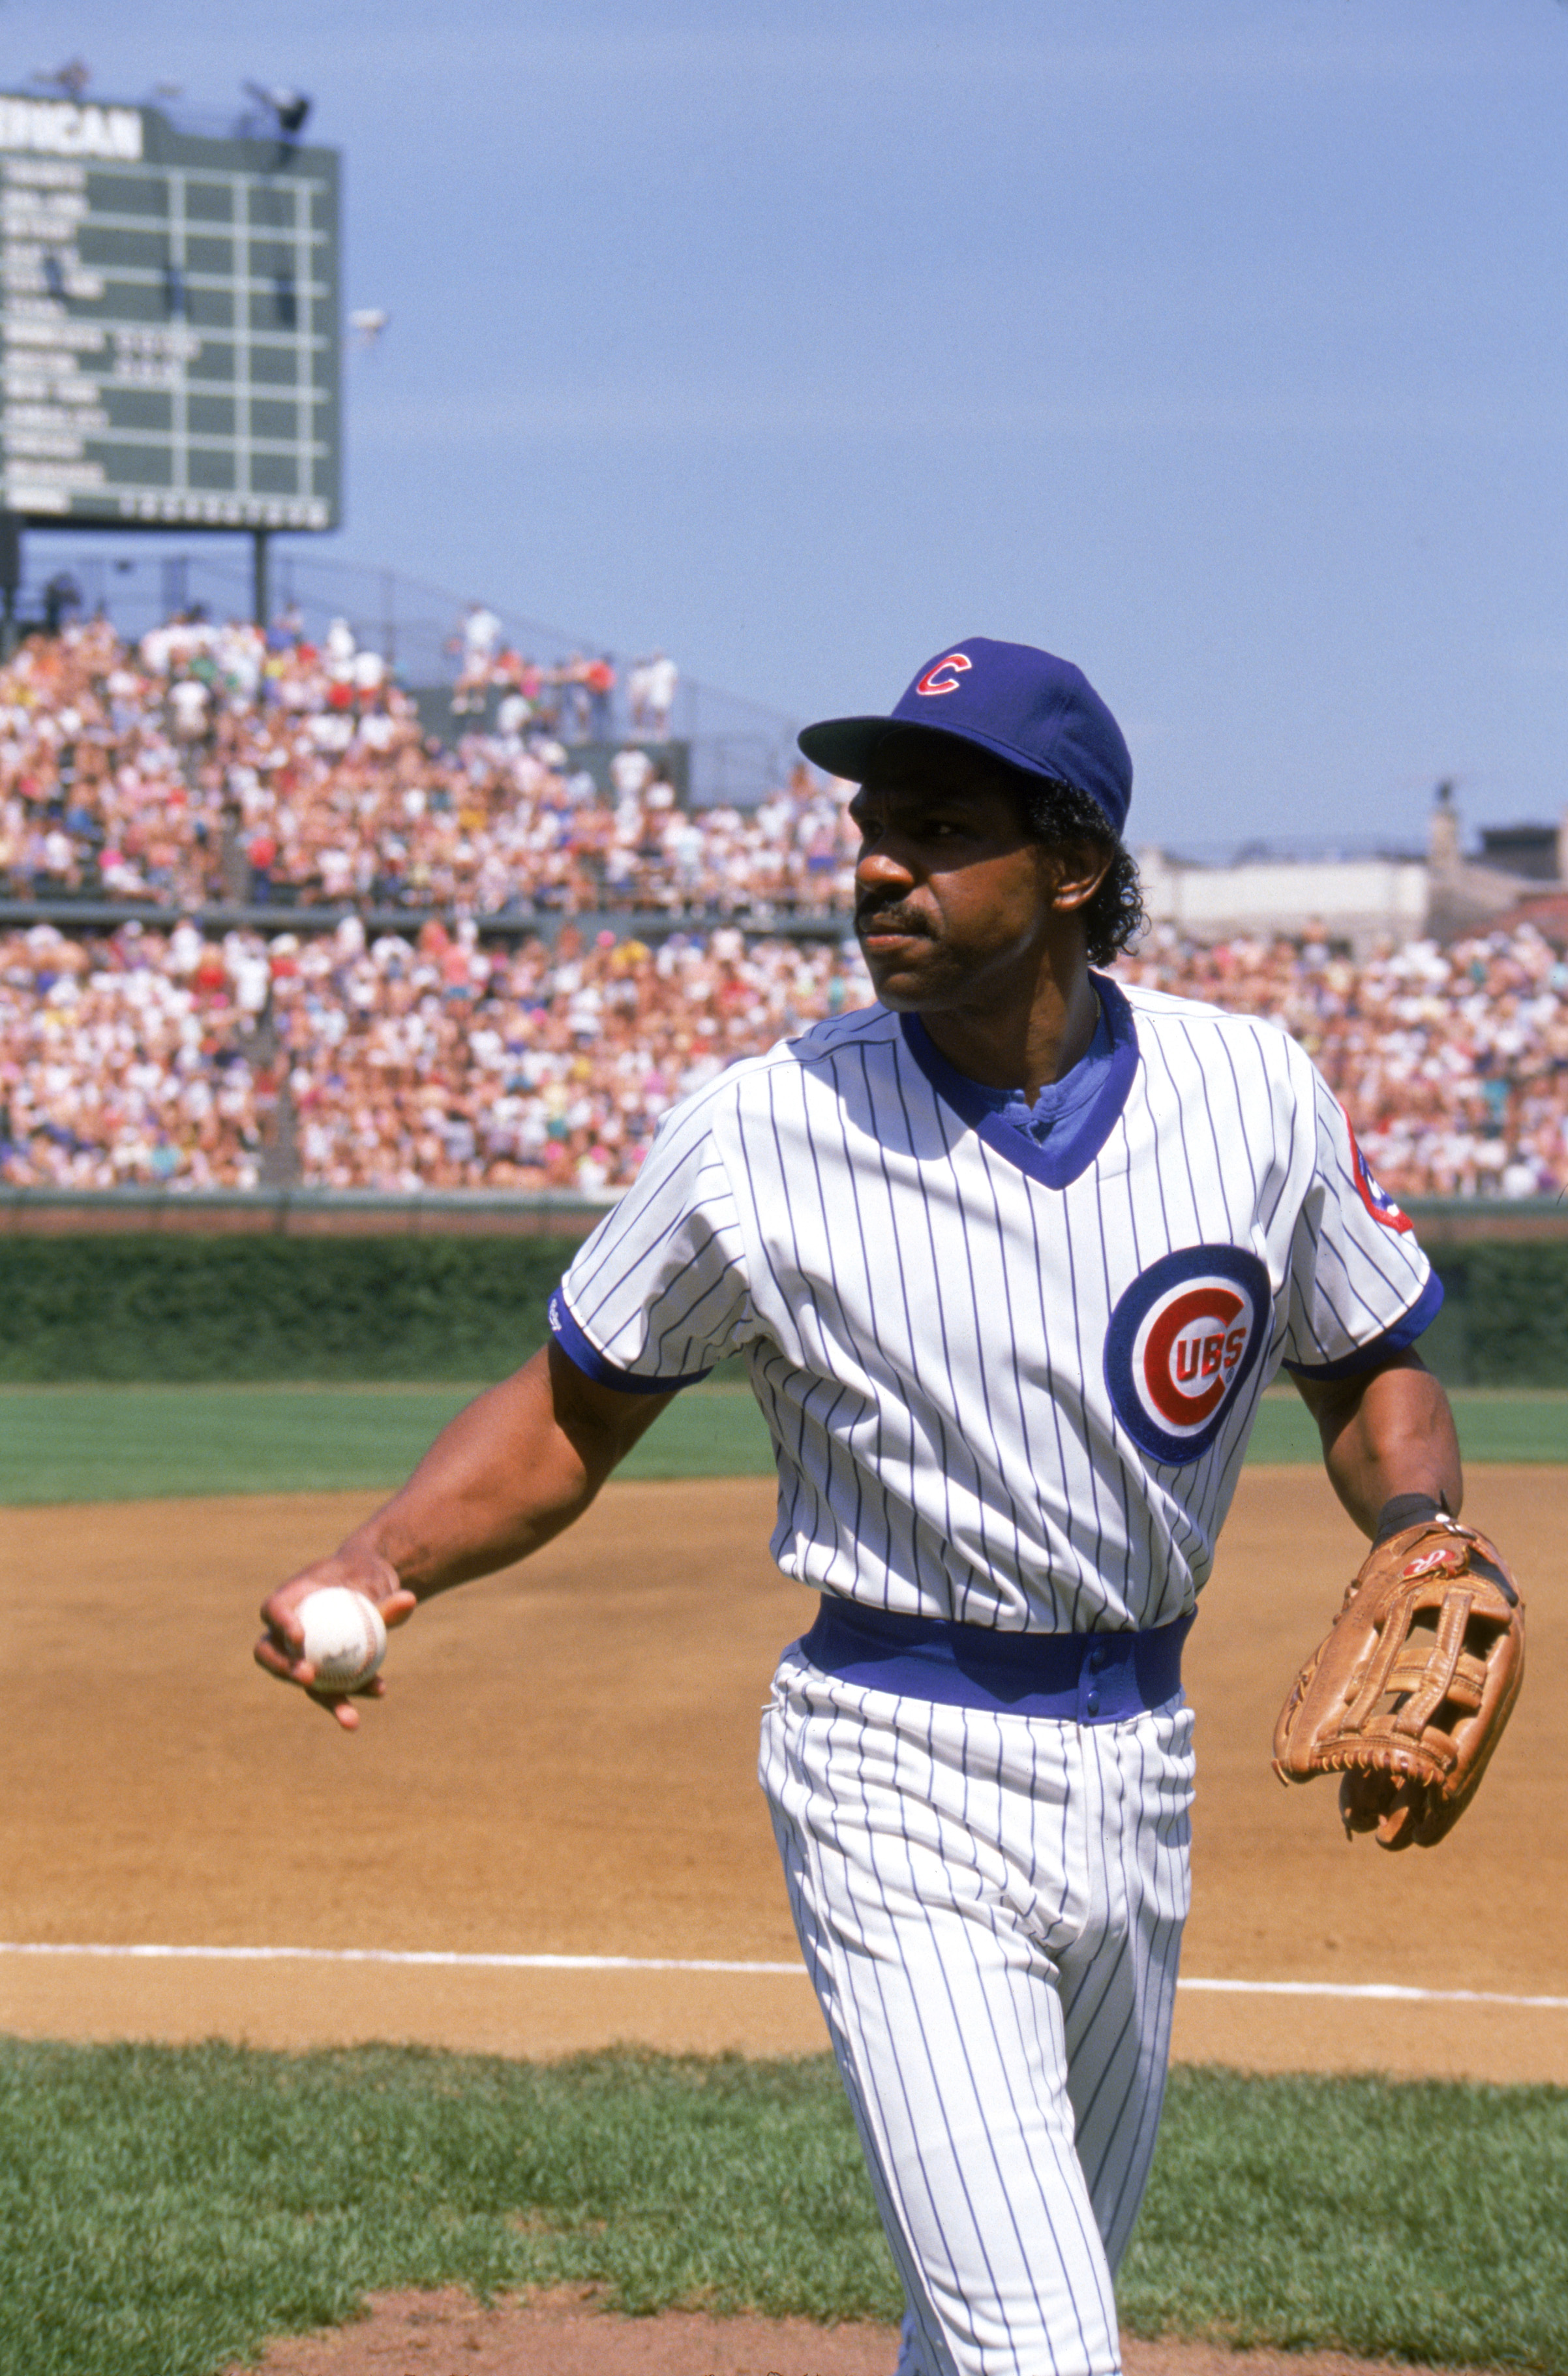 CHICAGO - 1989:  Andre Dawson #8 of the Chicago Cubs walks on the field with a ball in his hand during a game in 1989 at Wrigley Field in Chicago, Illinois.  (Photo by Jonathan Daniel/Getty Images)